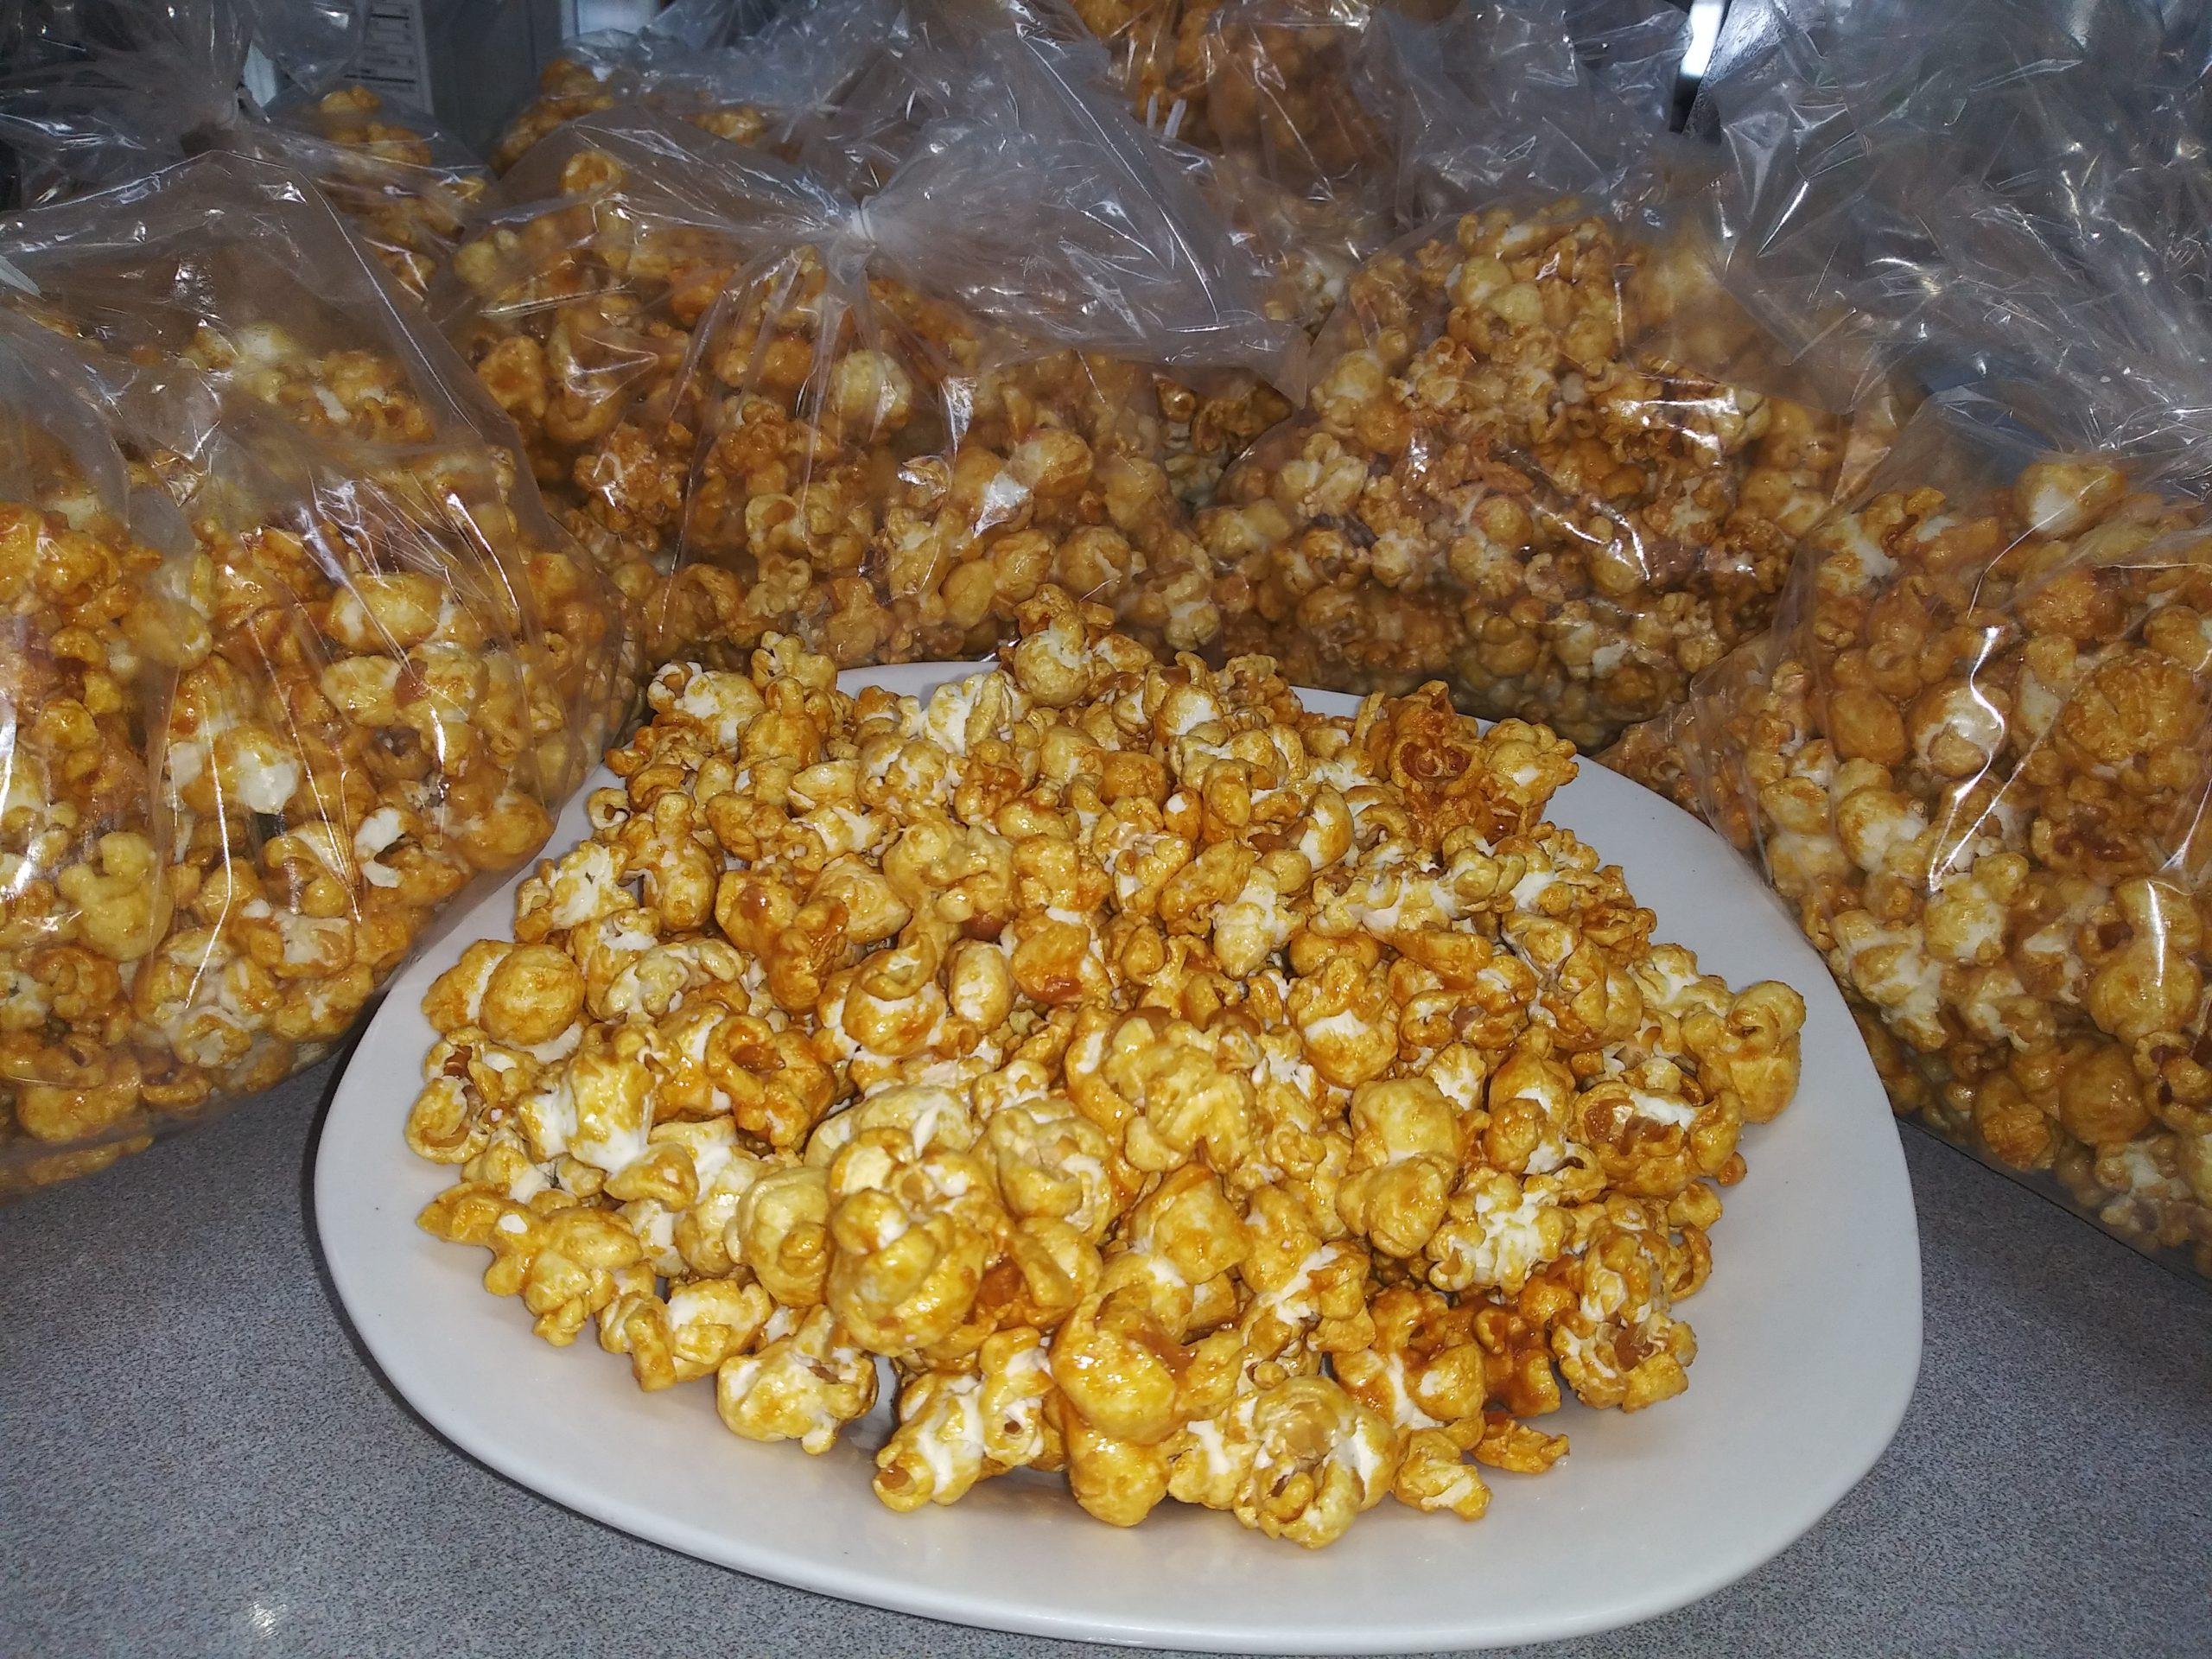 Easy Microwave Caramel Popcorn - Less Than 30 Minutes To Make